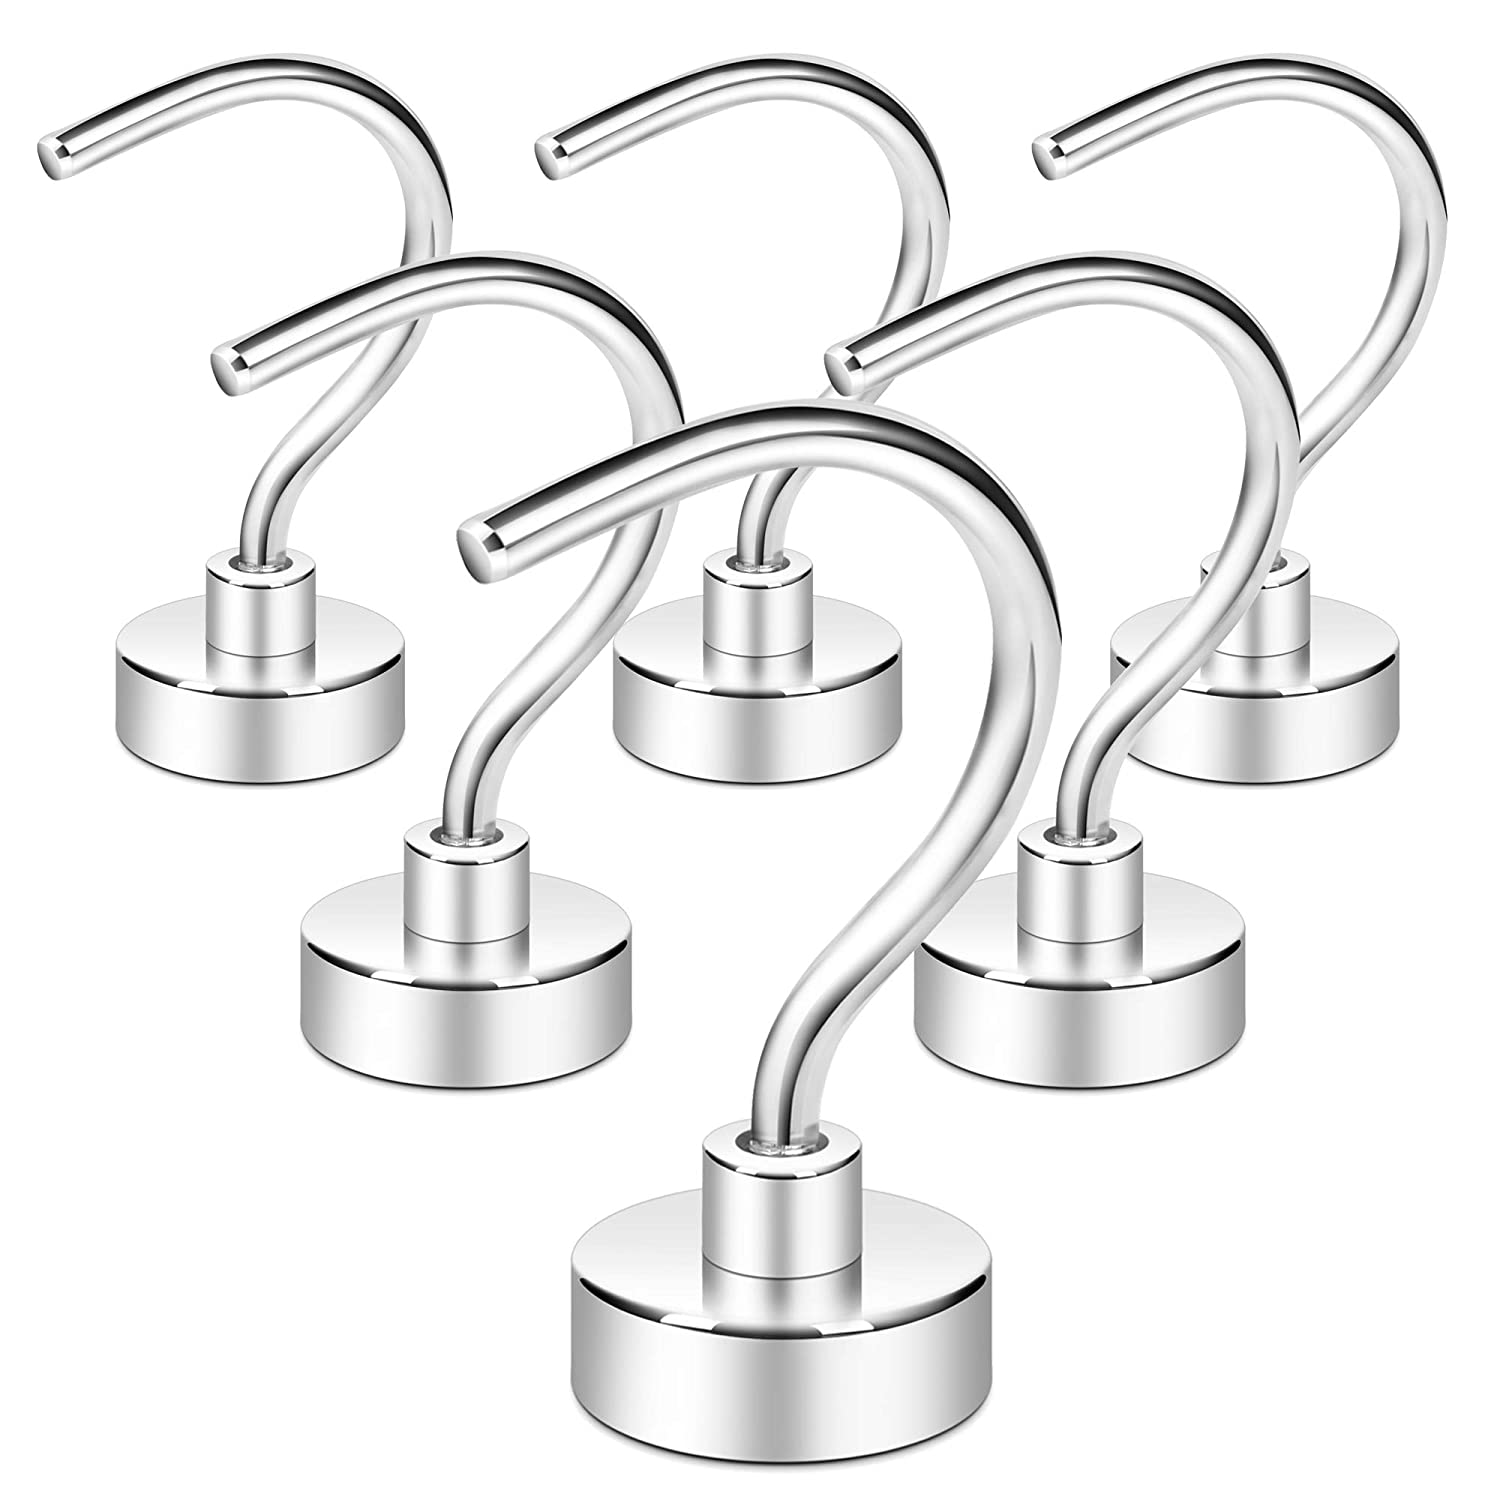 Magnetic Hooks Cruise Essentials Hook with CNC Machined Base Strong Corrosion